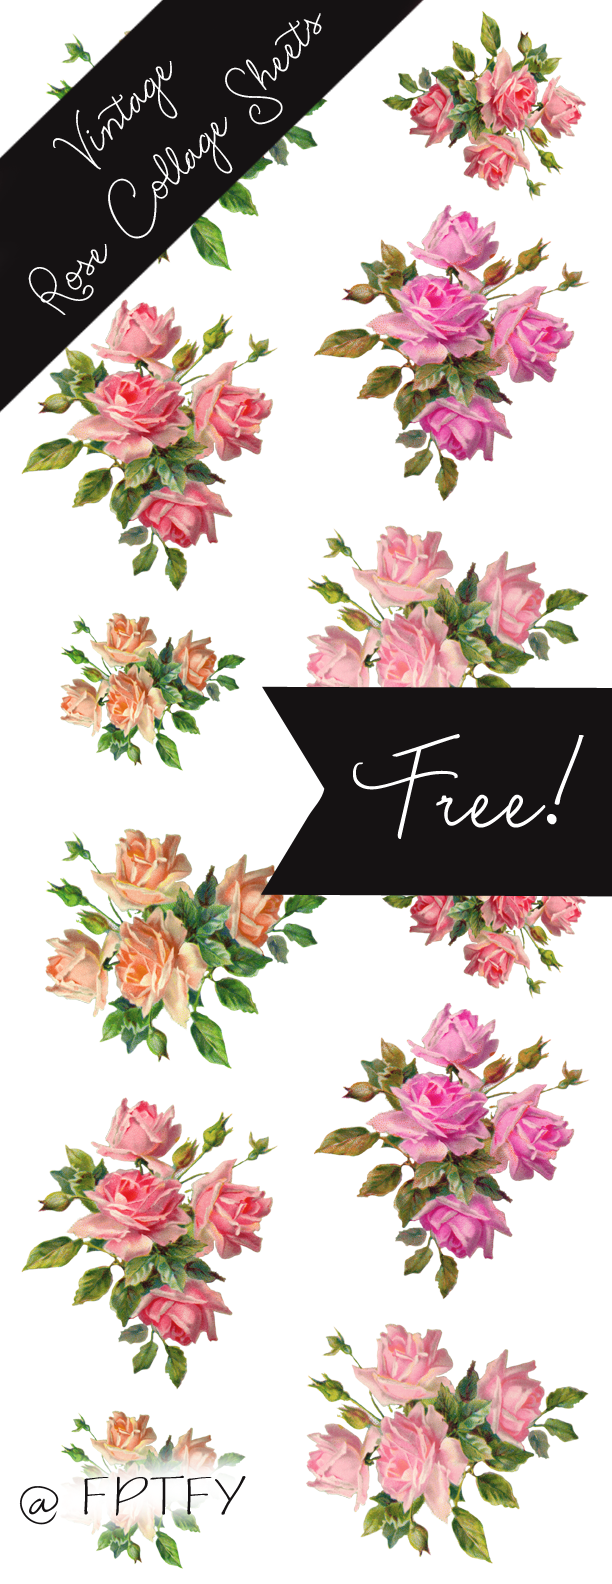 Flower collage clipart image free stock Gorgeous -Stock Vintage Rose Images | Best Free Digital Goods ... image free stock